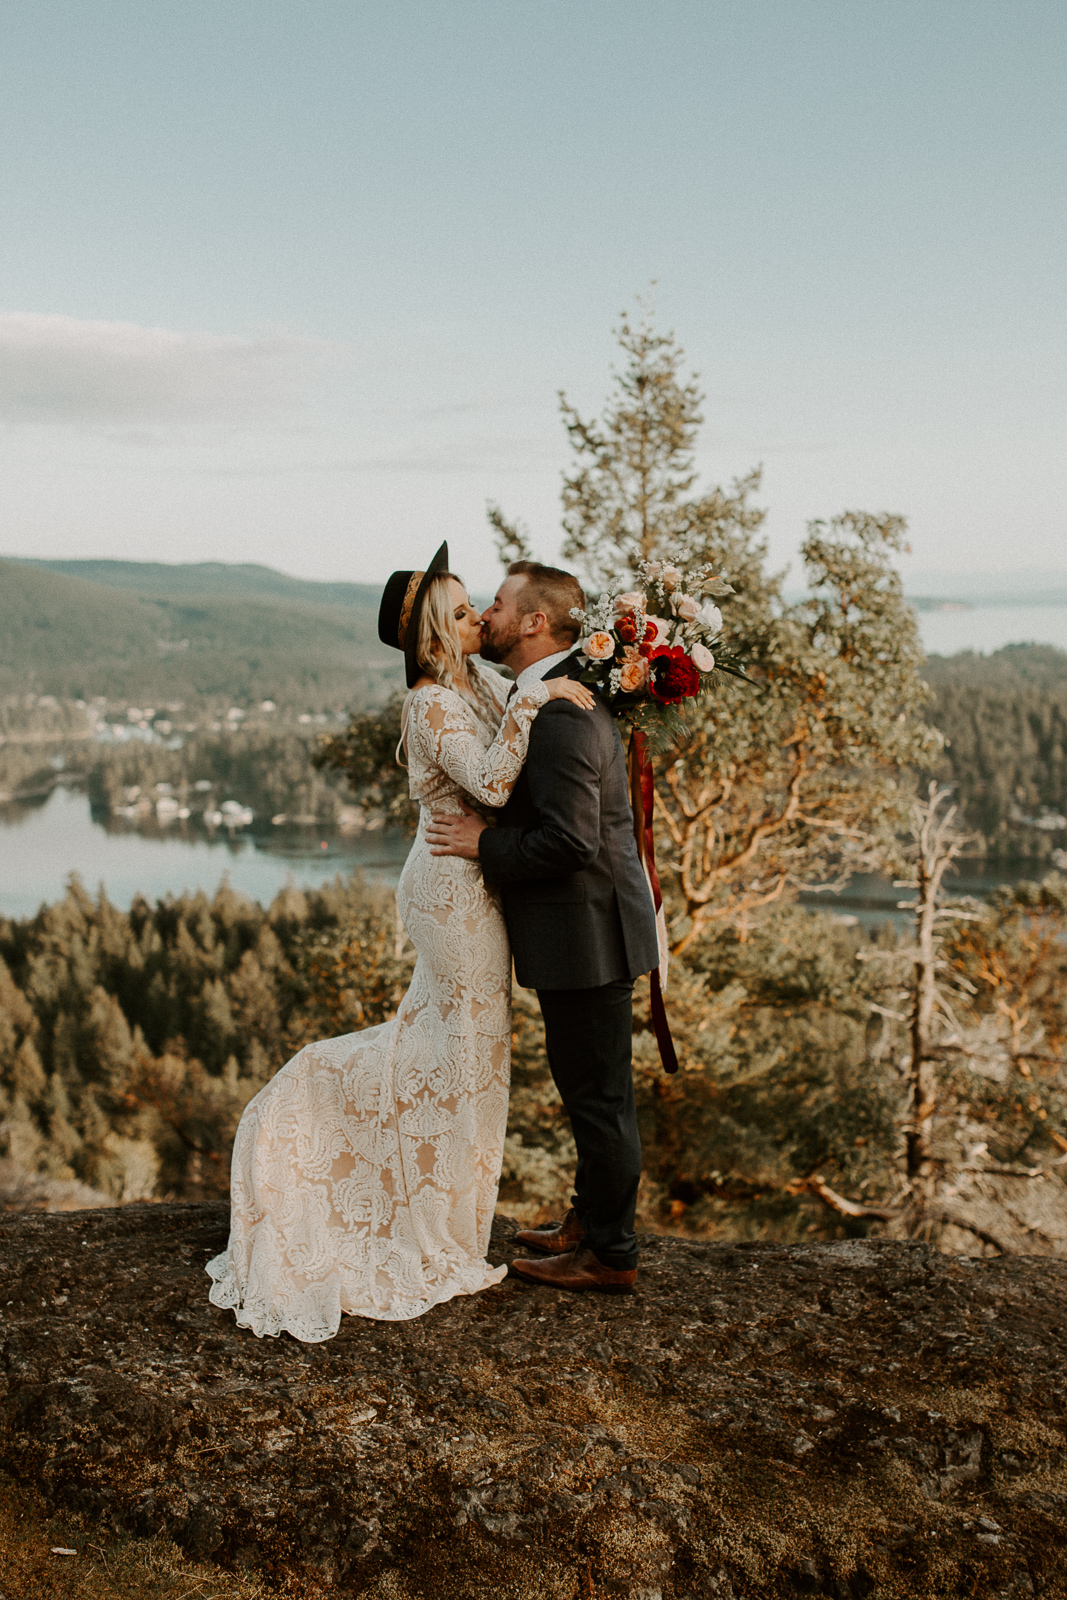 Luke Lambertson Photo_BritishColumbia_Canada_AdventurousCouple_Elopement_IMG-7900.jpg